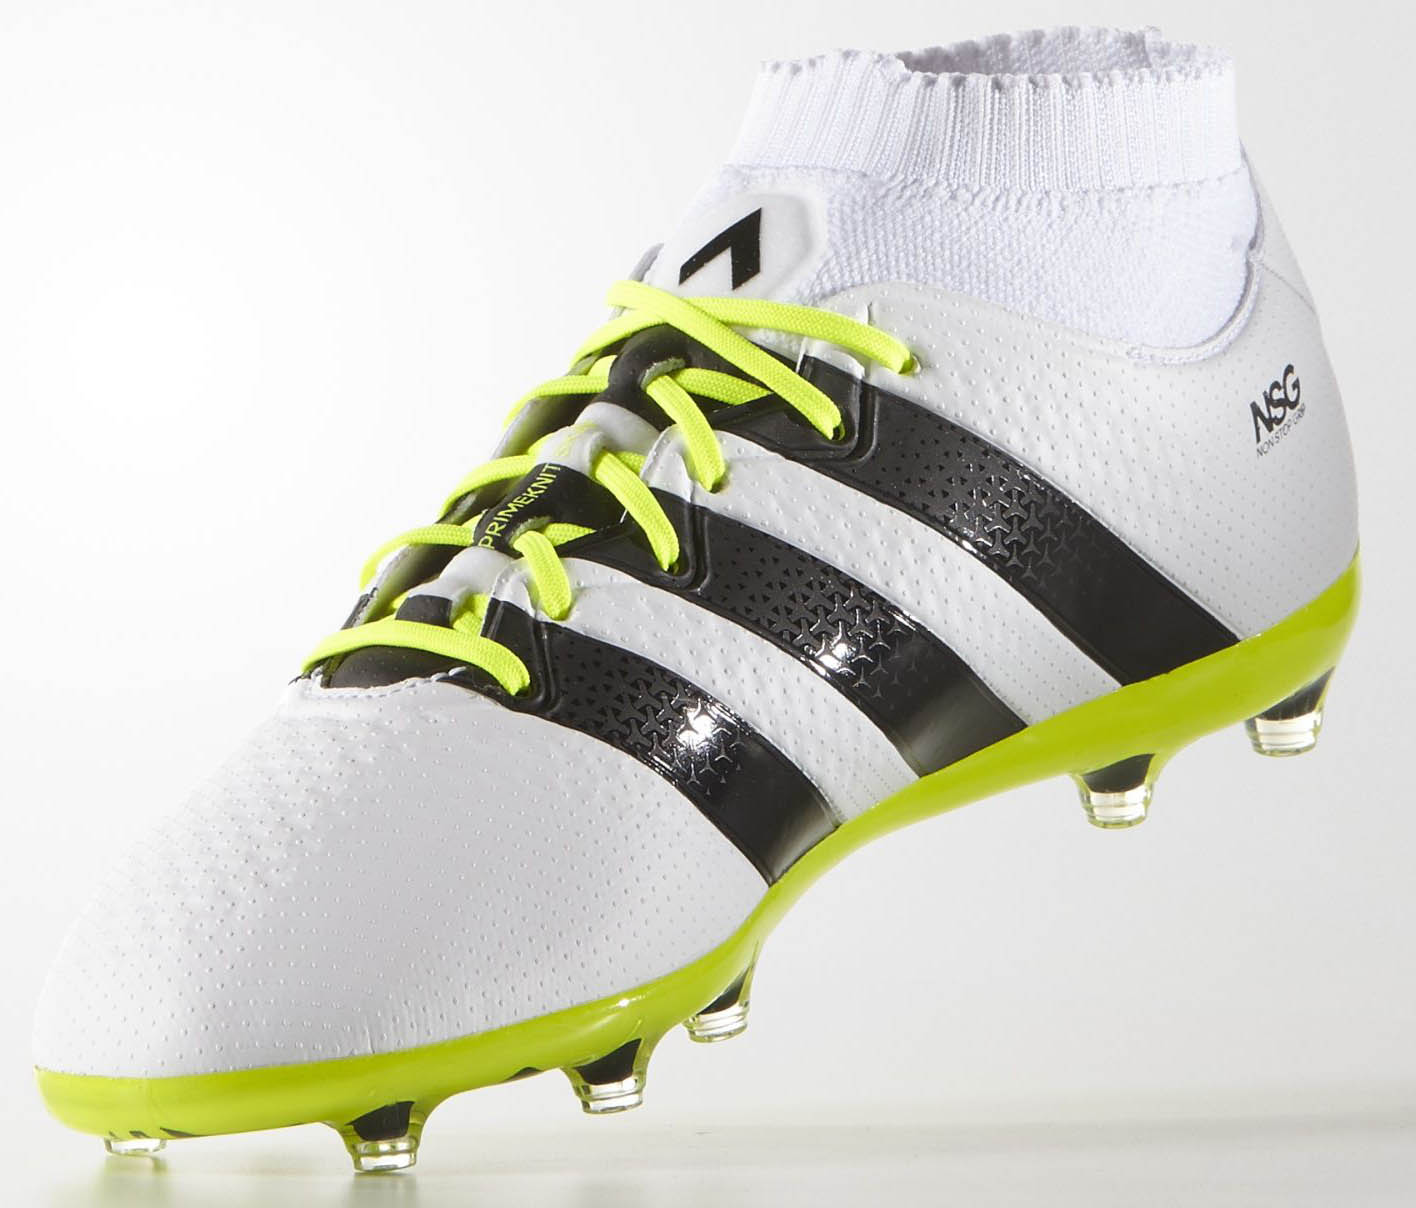 white adidas ace 16 primeknit 2016 boots leaked footy. Black Bedroom Furniture Sets. Home Design Ideas